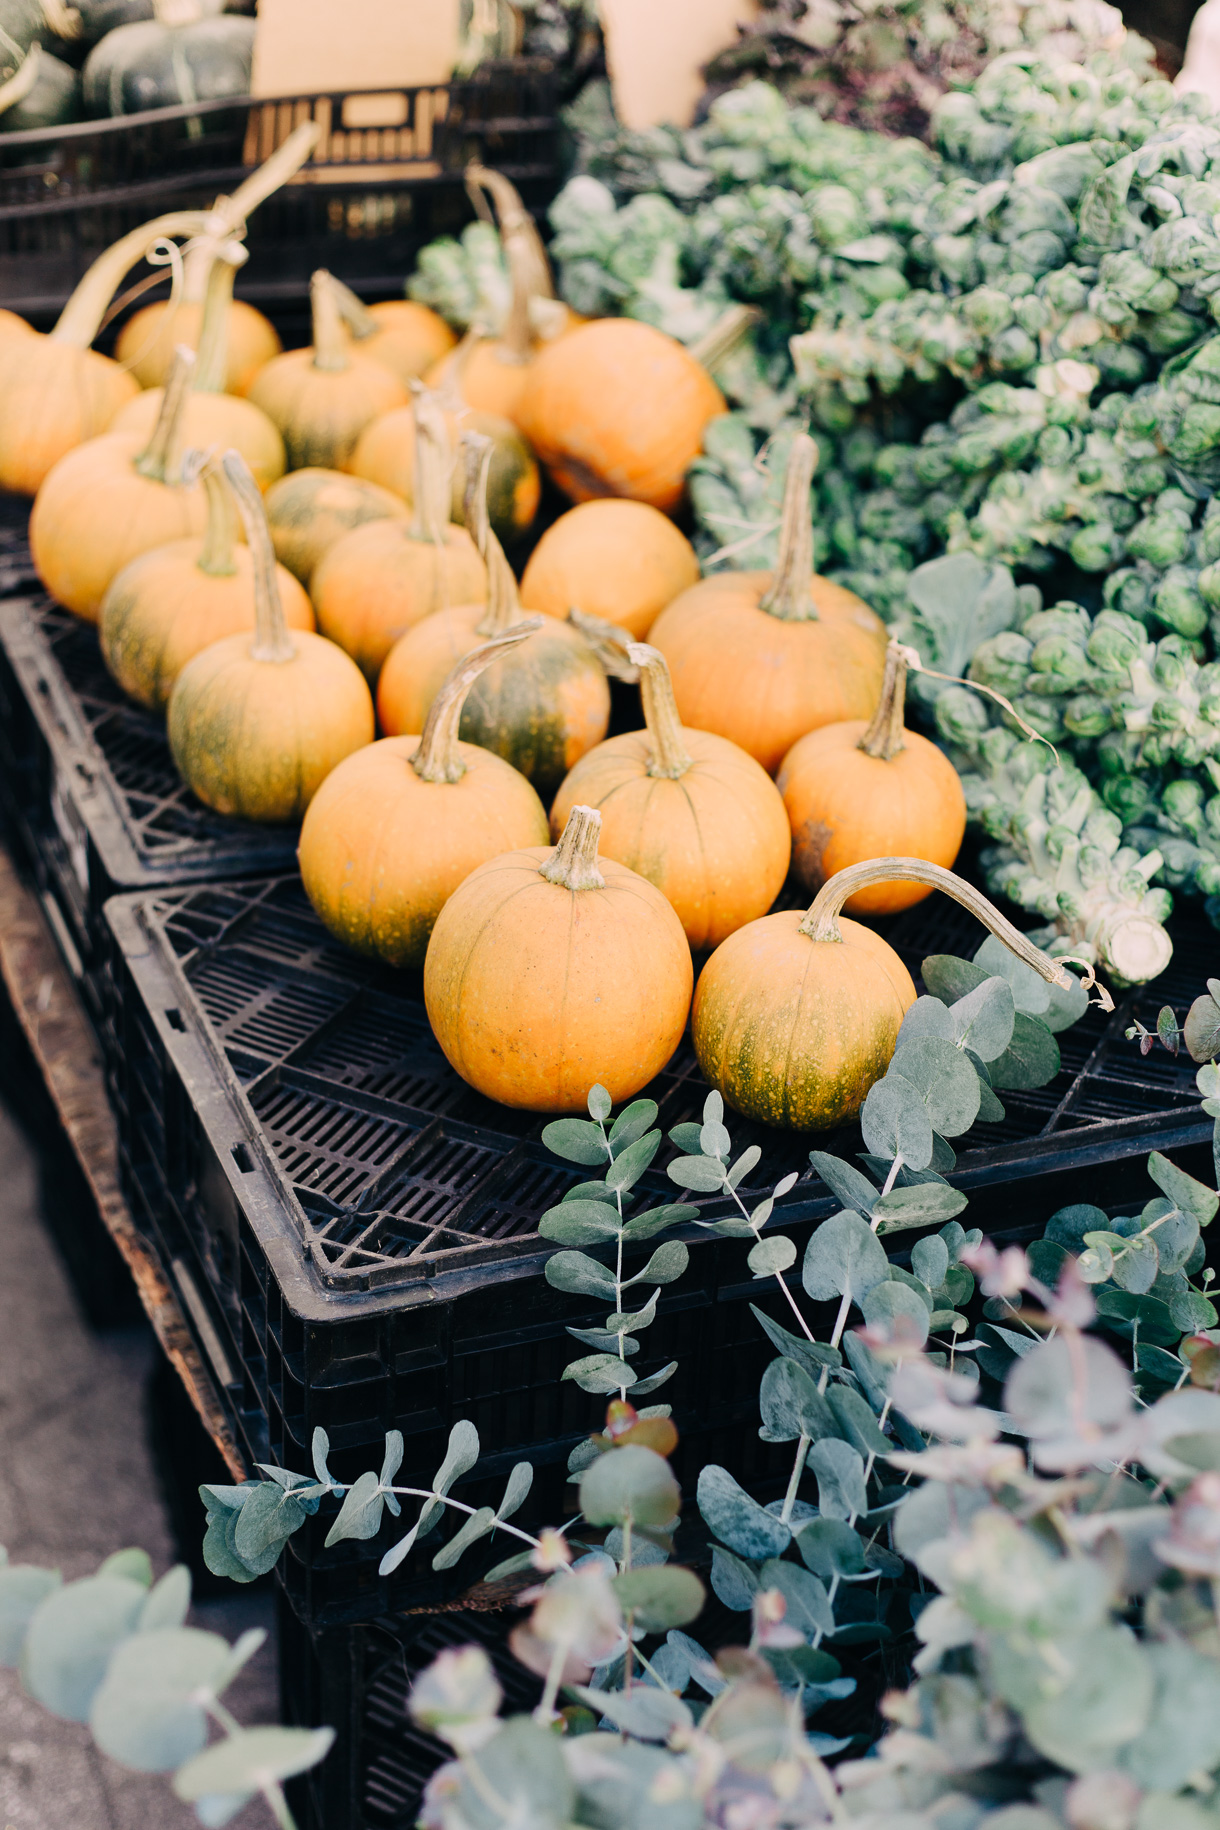 fall-at-union-square-farmers-market-3076